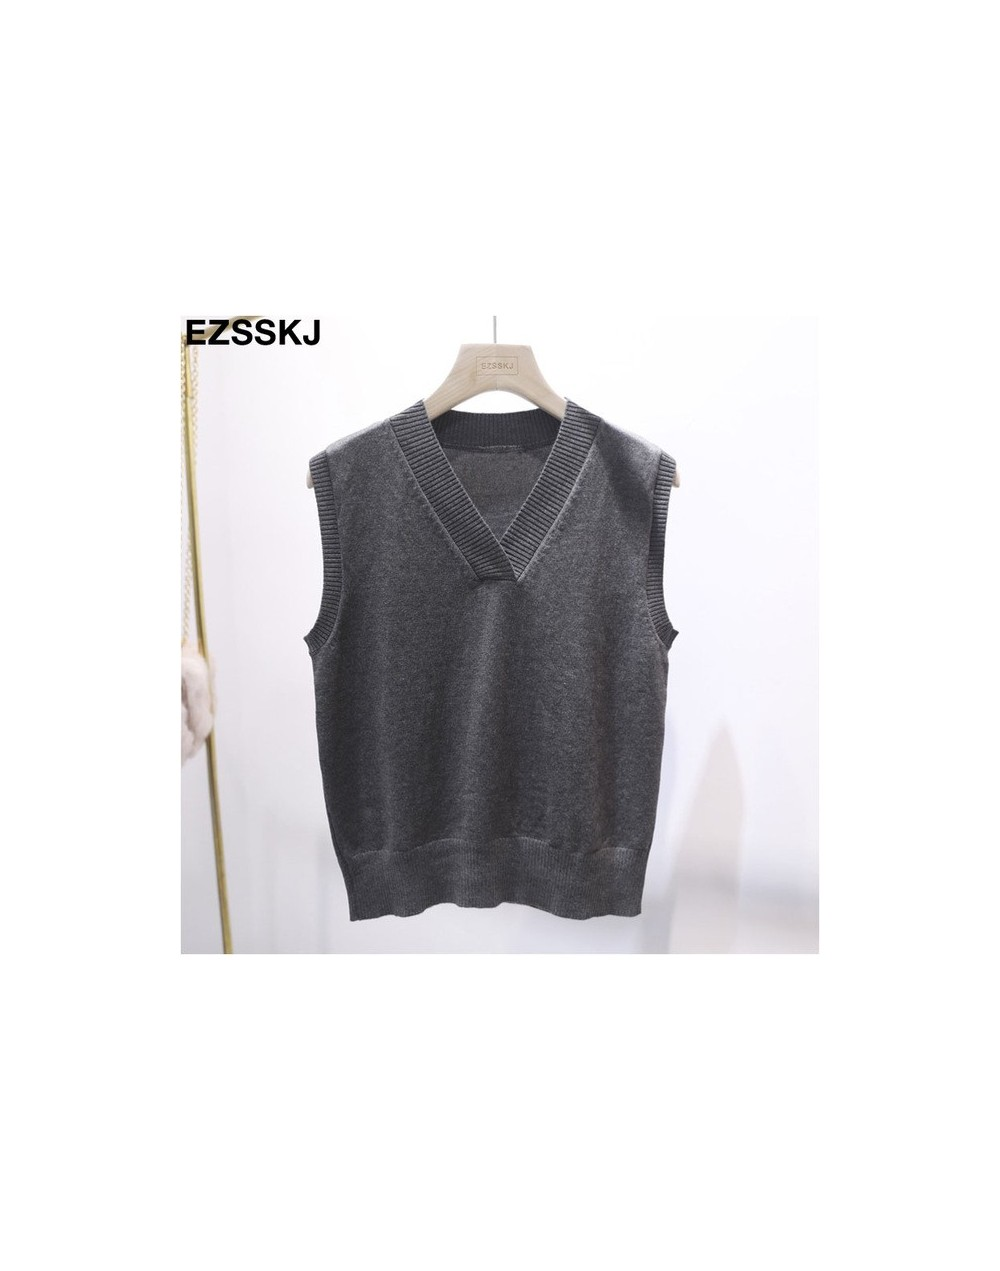 basic casual plus size spring Autumn Sweater vest Women sleeveless loose V-neck sleeveless Sweater female Jumpers pullover -...